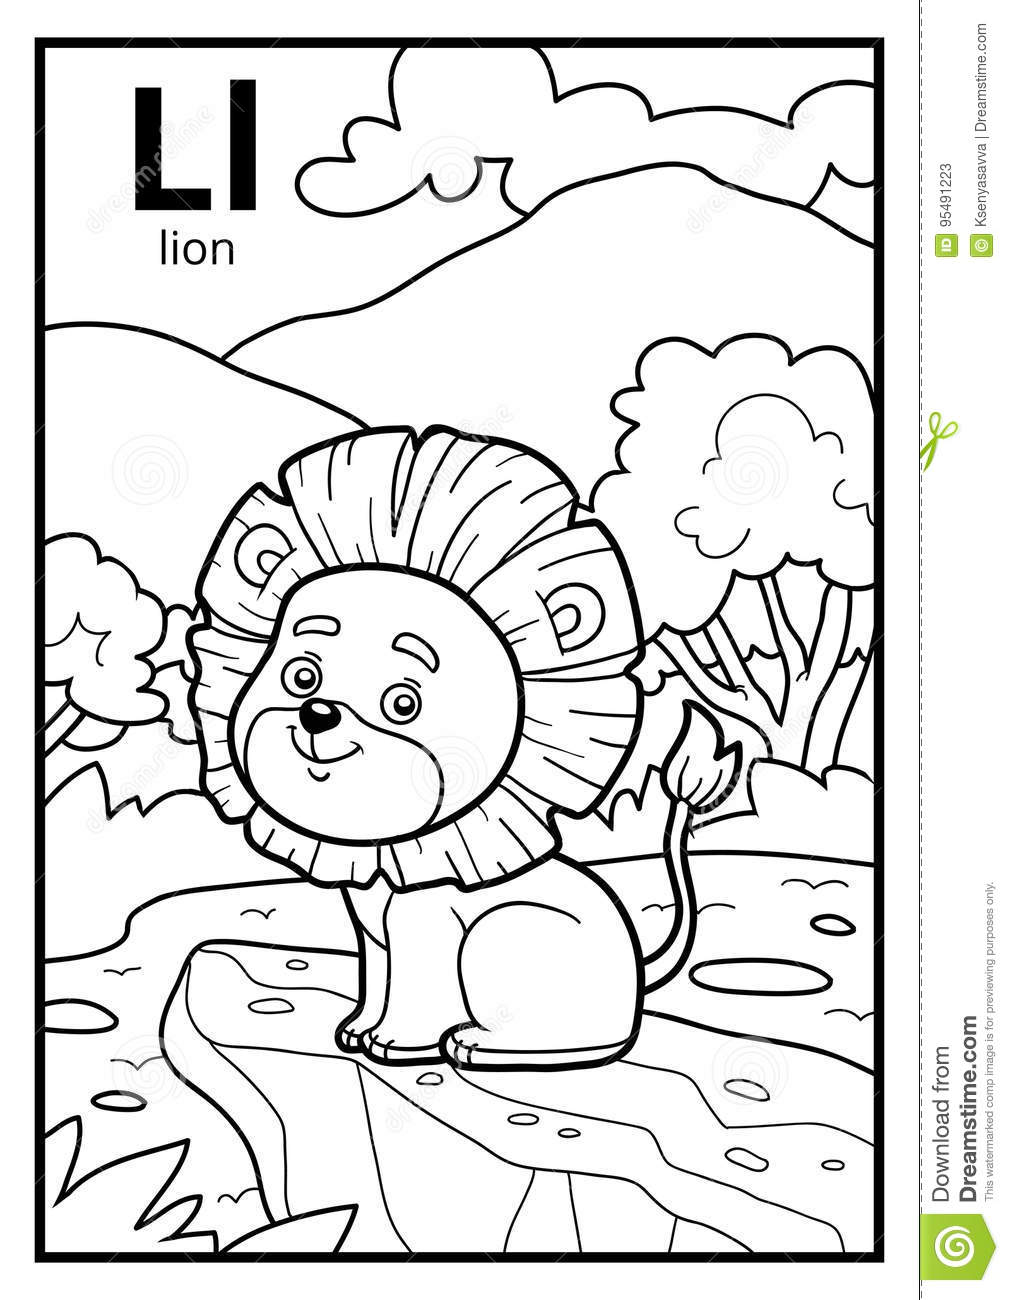 Coloring Book, Colorless Alphabet. Letter L, Lion Stock Vector ...